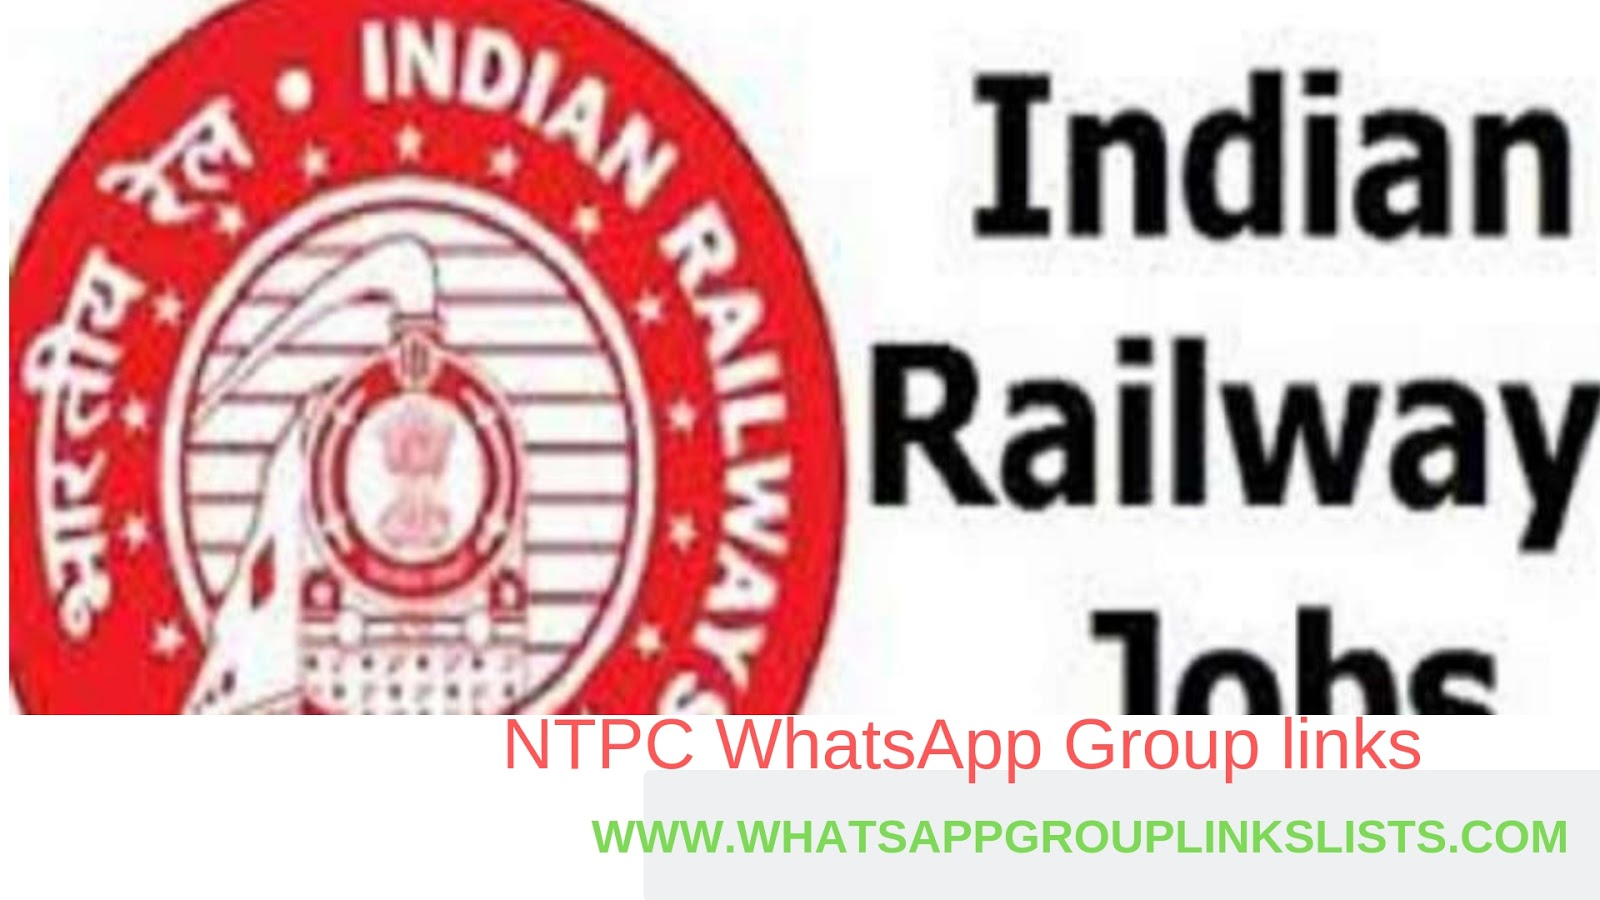 Join NTPC WhatsApp Group Links List